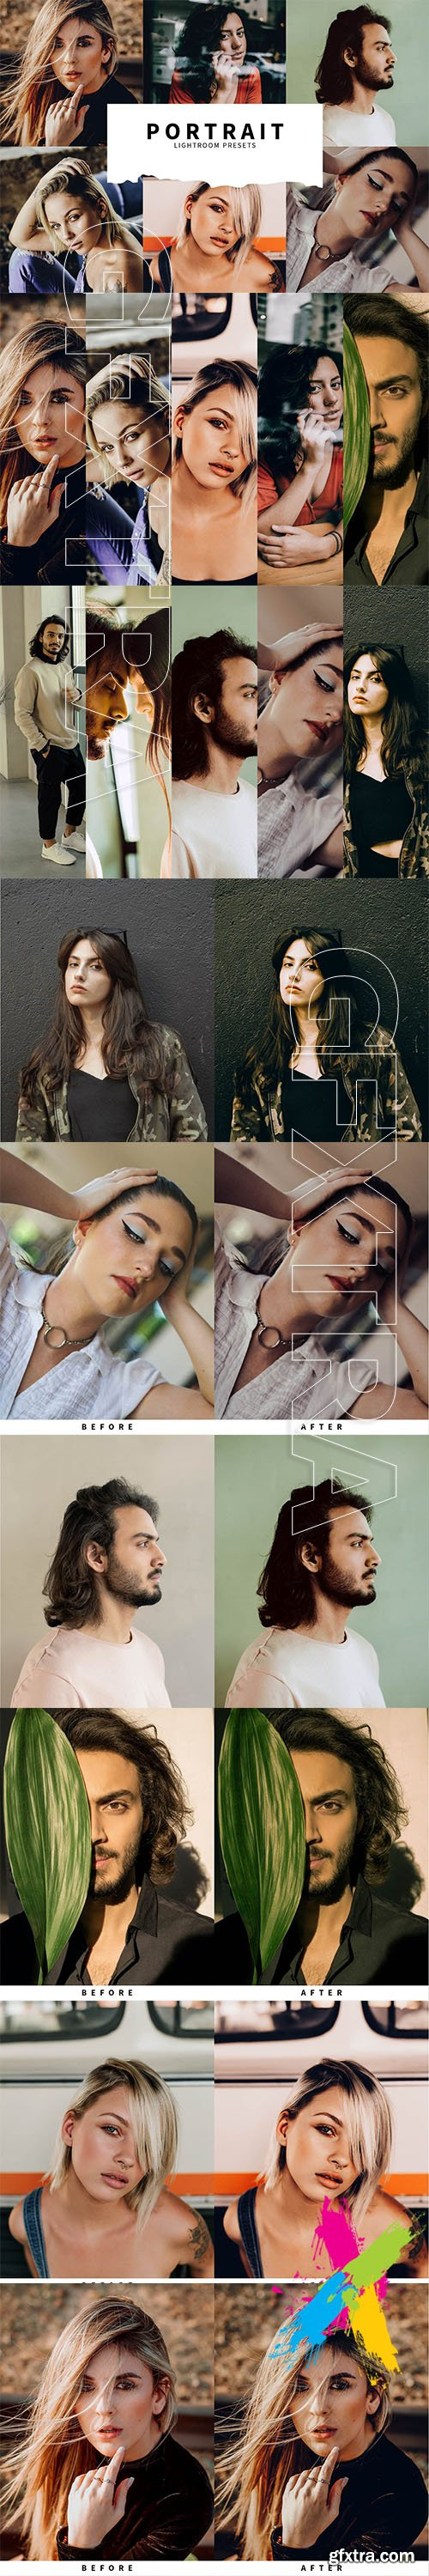 CreativeMarket - 10 Portrait Lightroom Presets 5748485